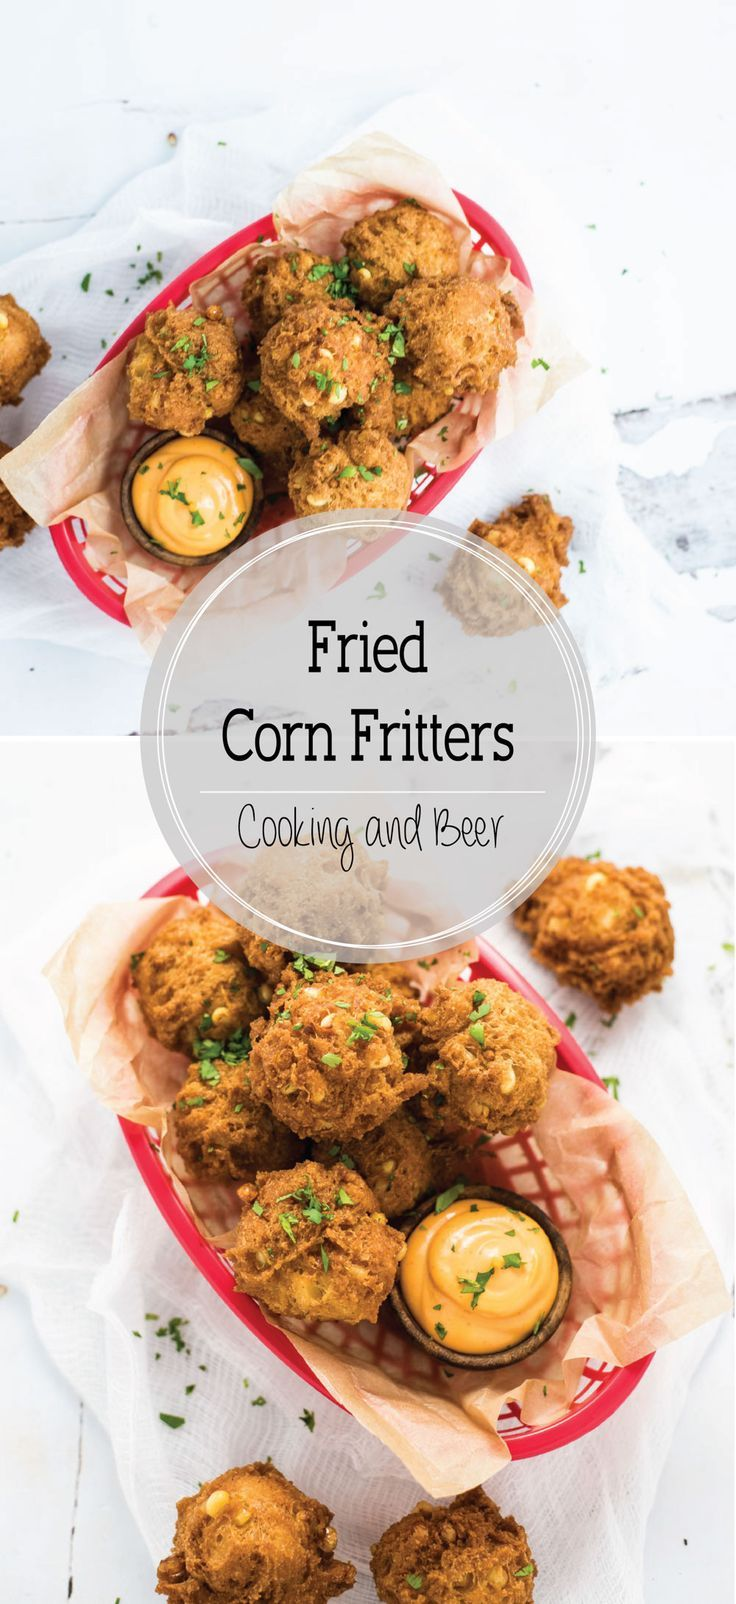 ... ingredients, you can have fried corn fritters in less than 30 minutes